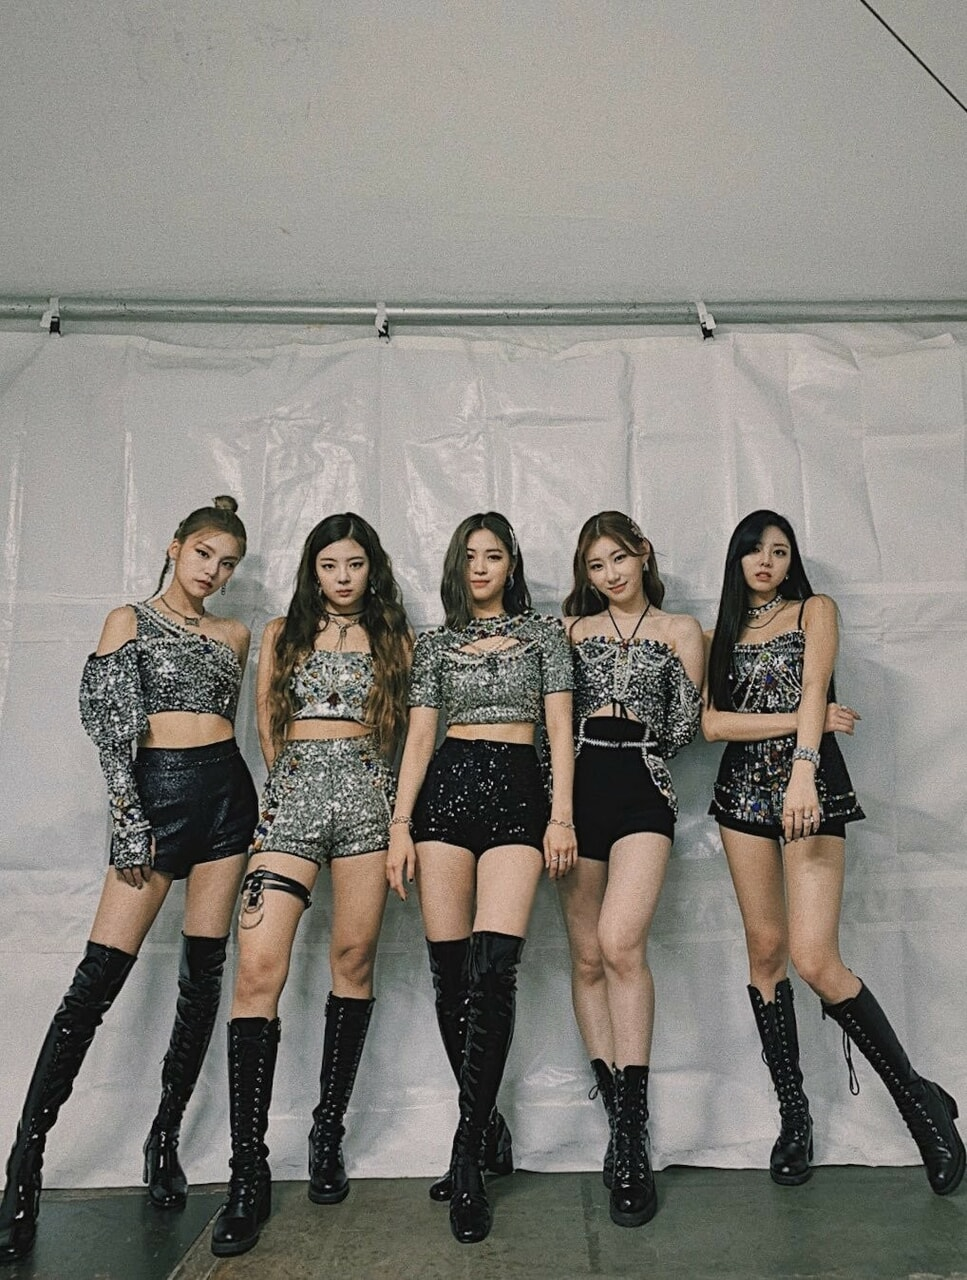 gg, idols, and outfits image